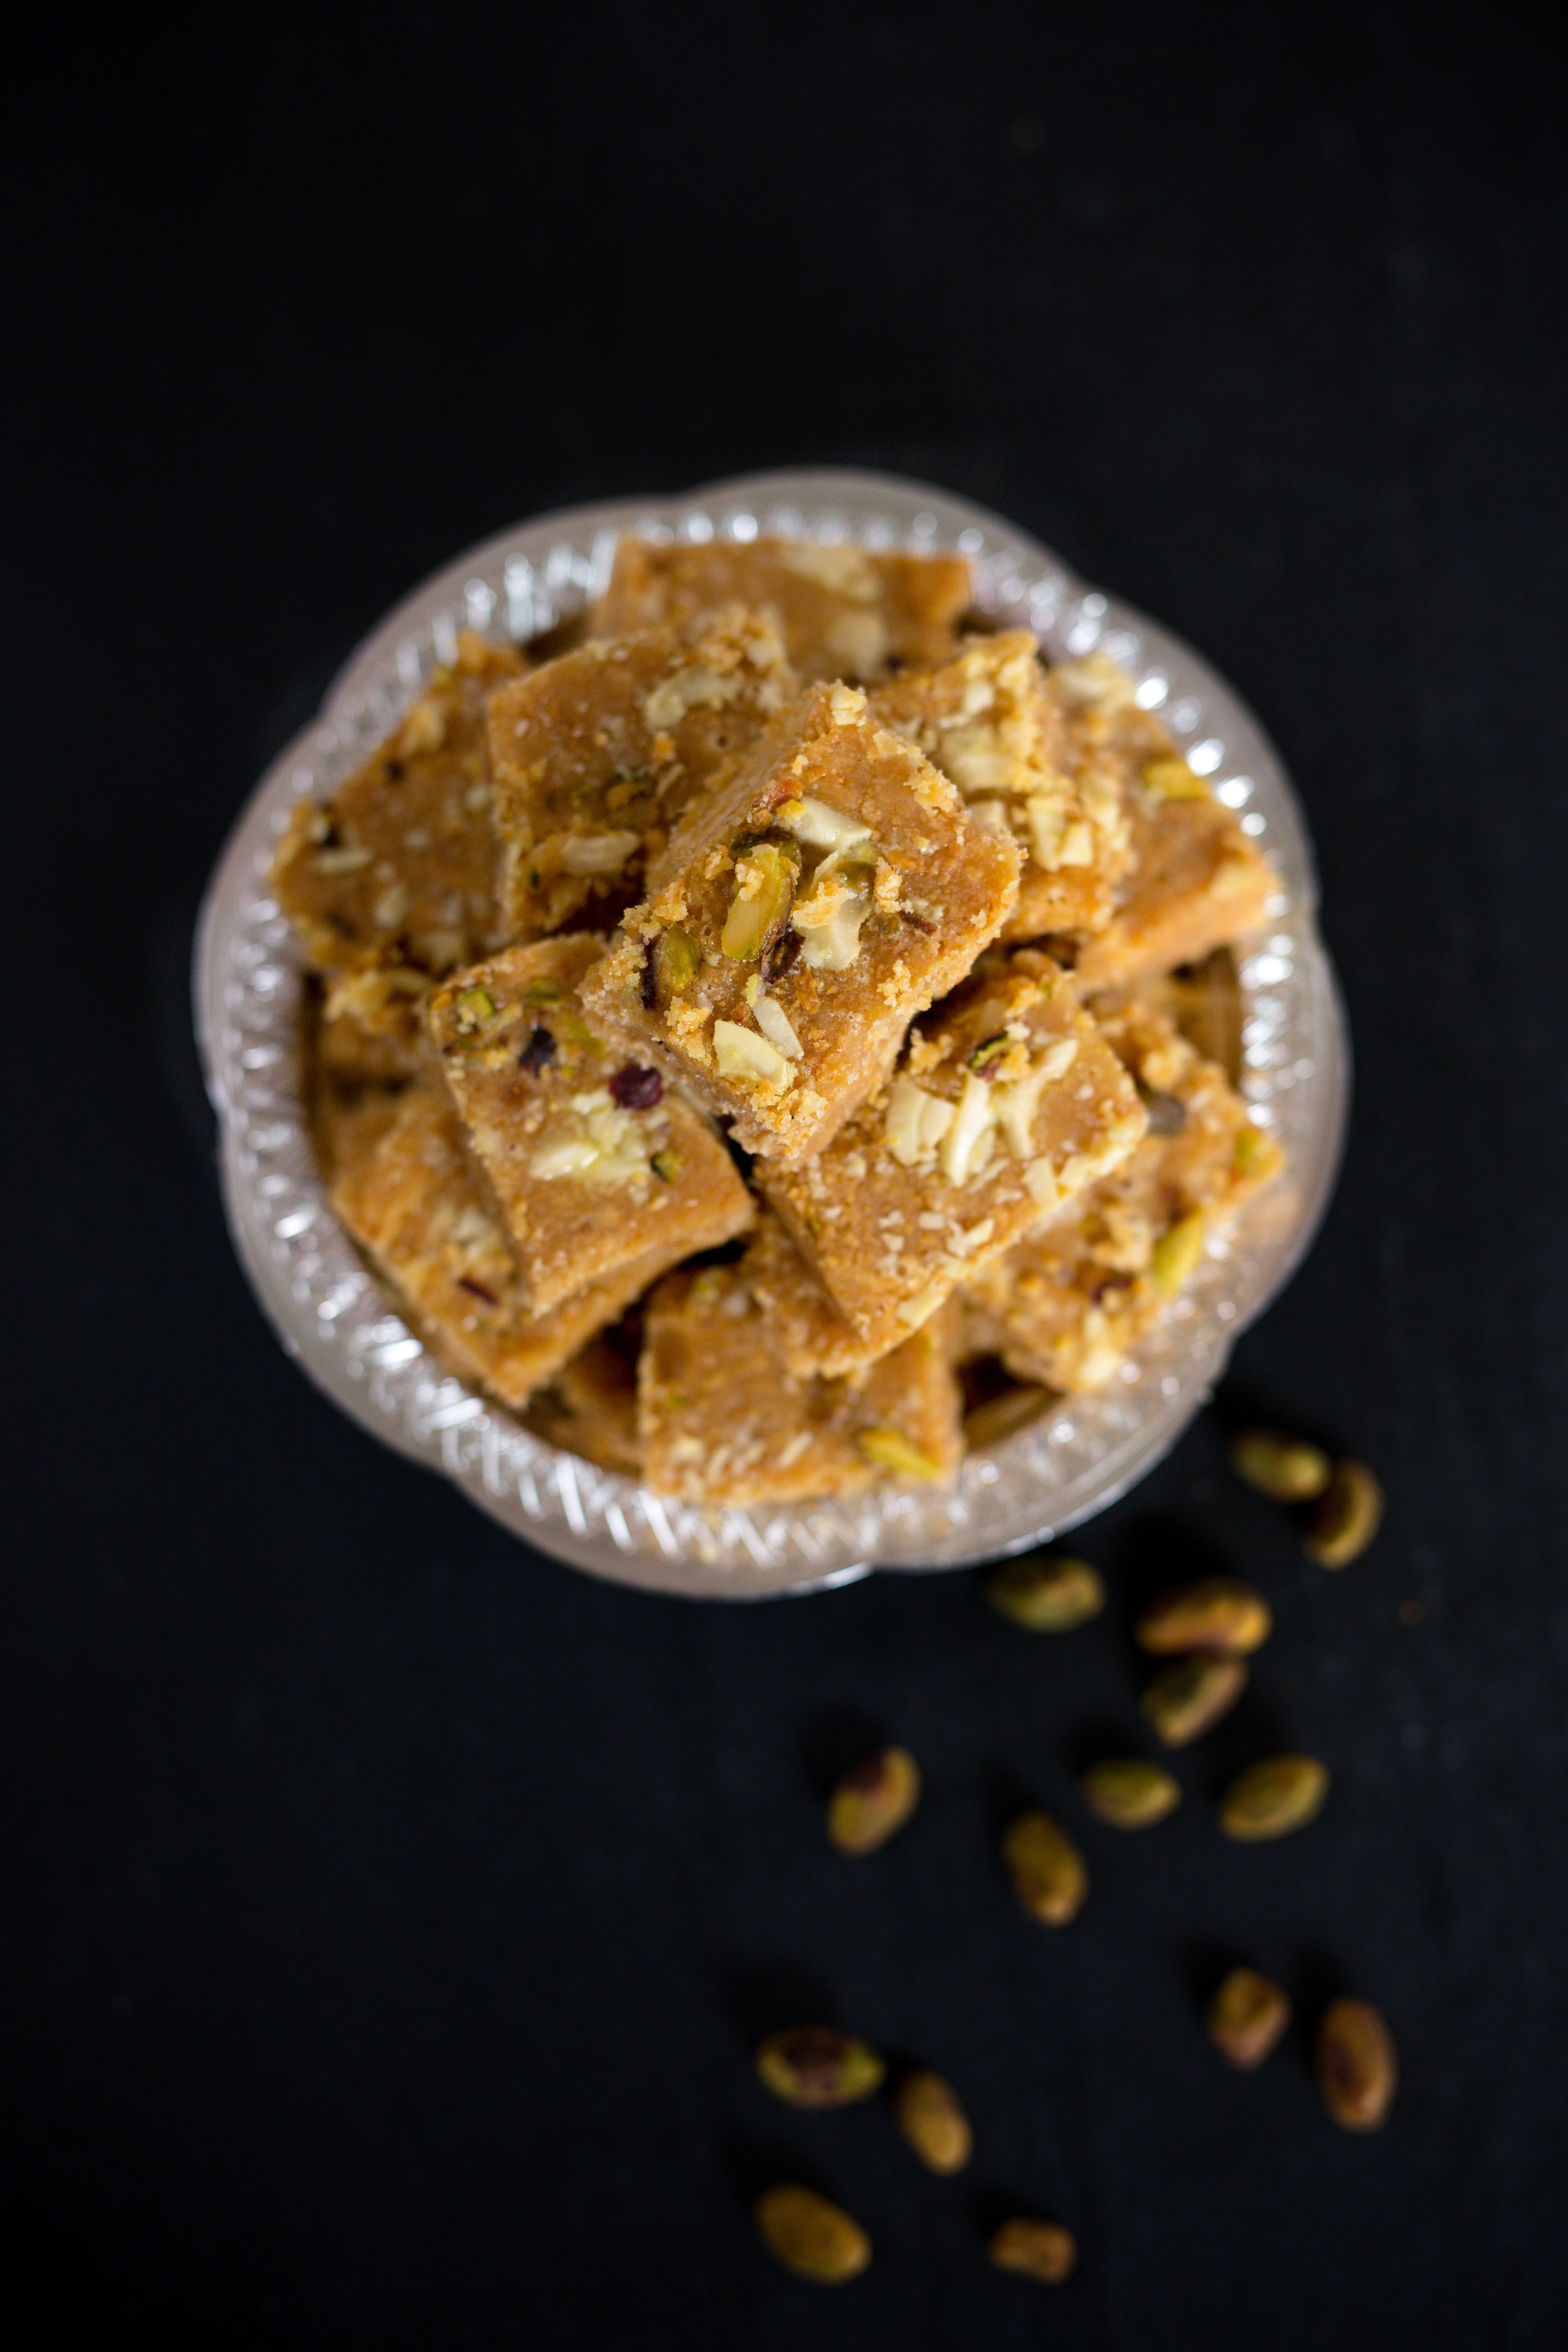 mohanthal recipes, how to make mohan thal, chaitra haldi kumkum, haldi kumkum, gauri pooja, gujarati sweets, dessert recipes, indian desserts, festival recipes, indianfood blog, food photography